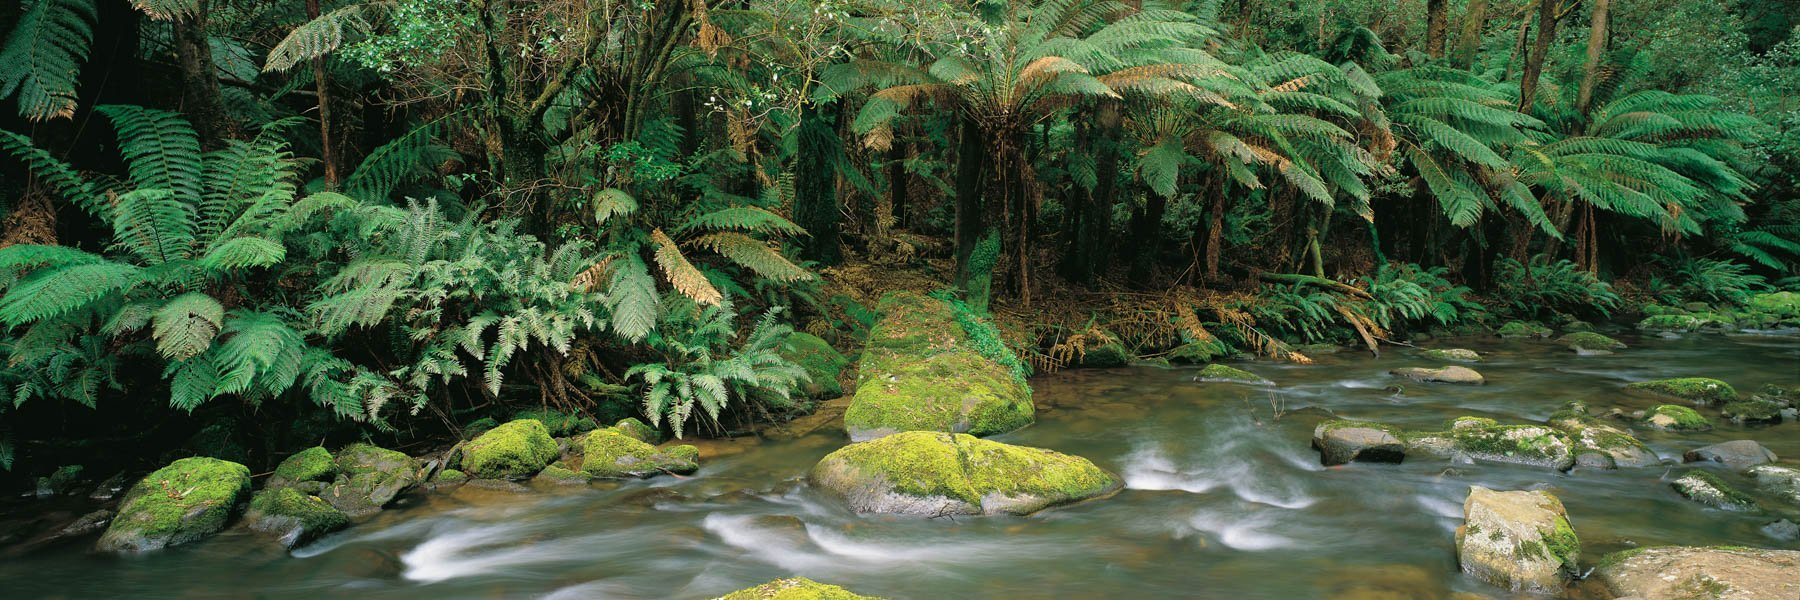 Aire River flowing through the rainforest, Cape Otway, Victoria, Australia